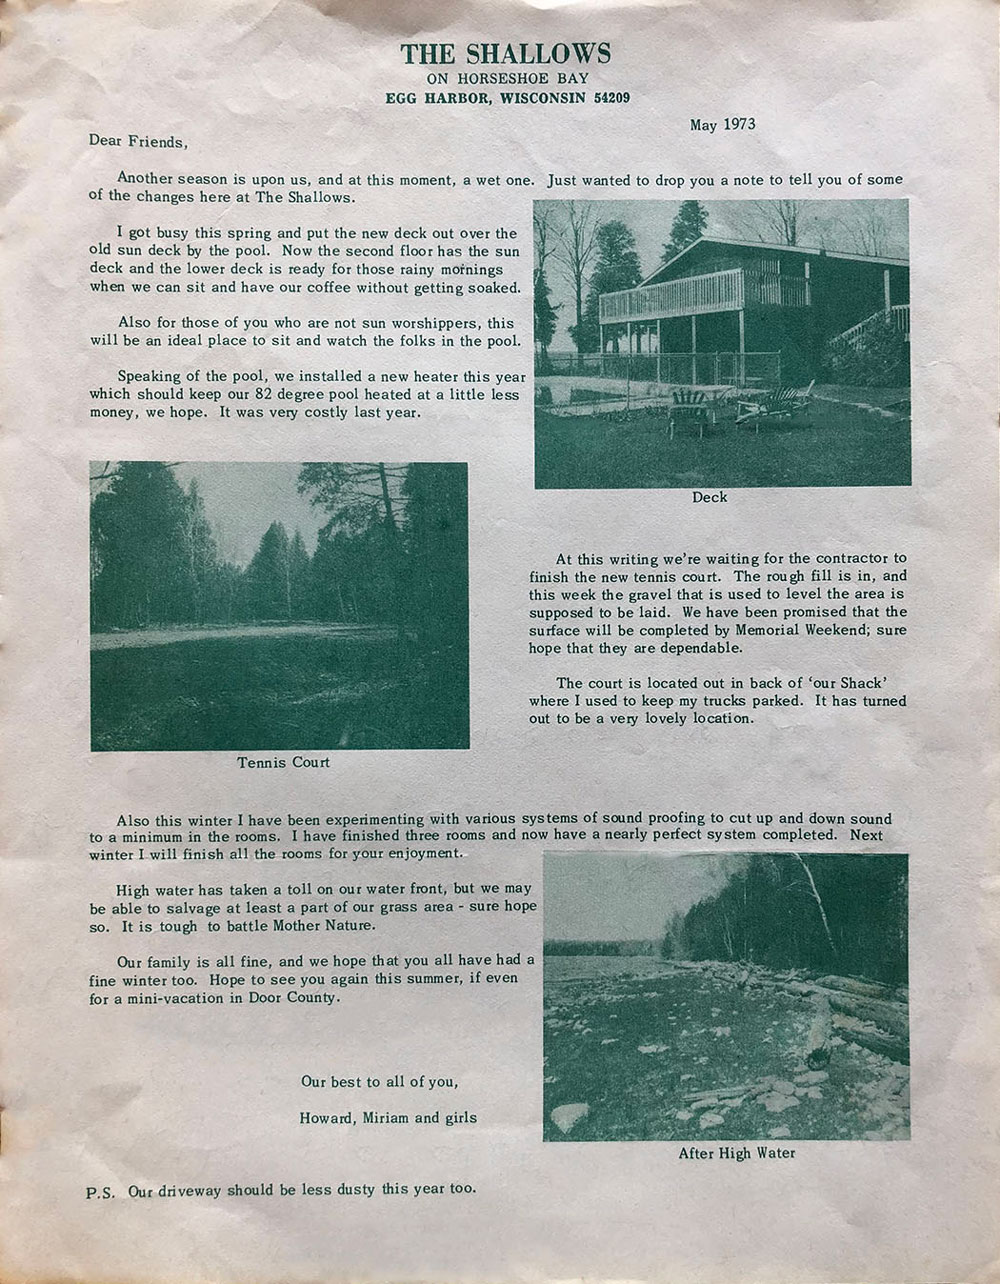 Vintage newsletter describing Shallows accommodations